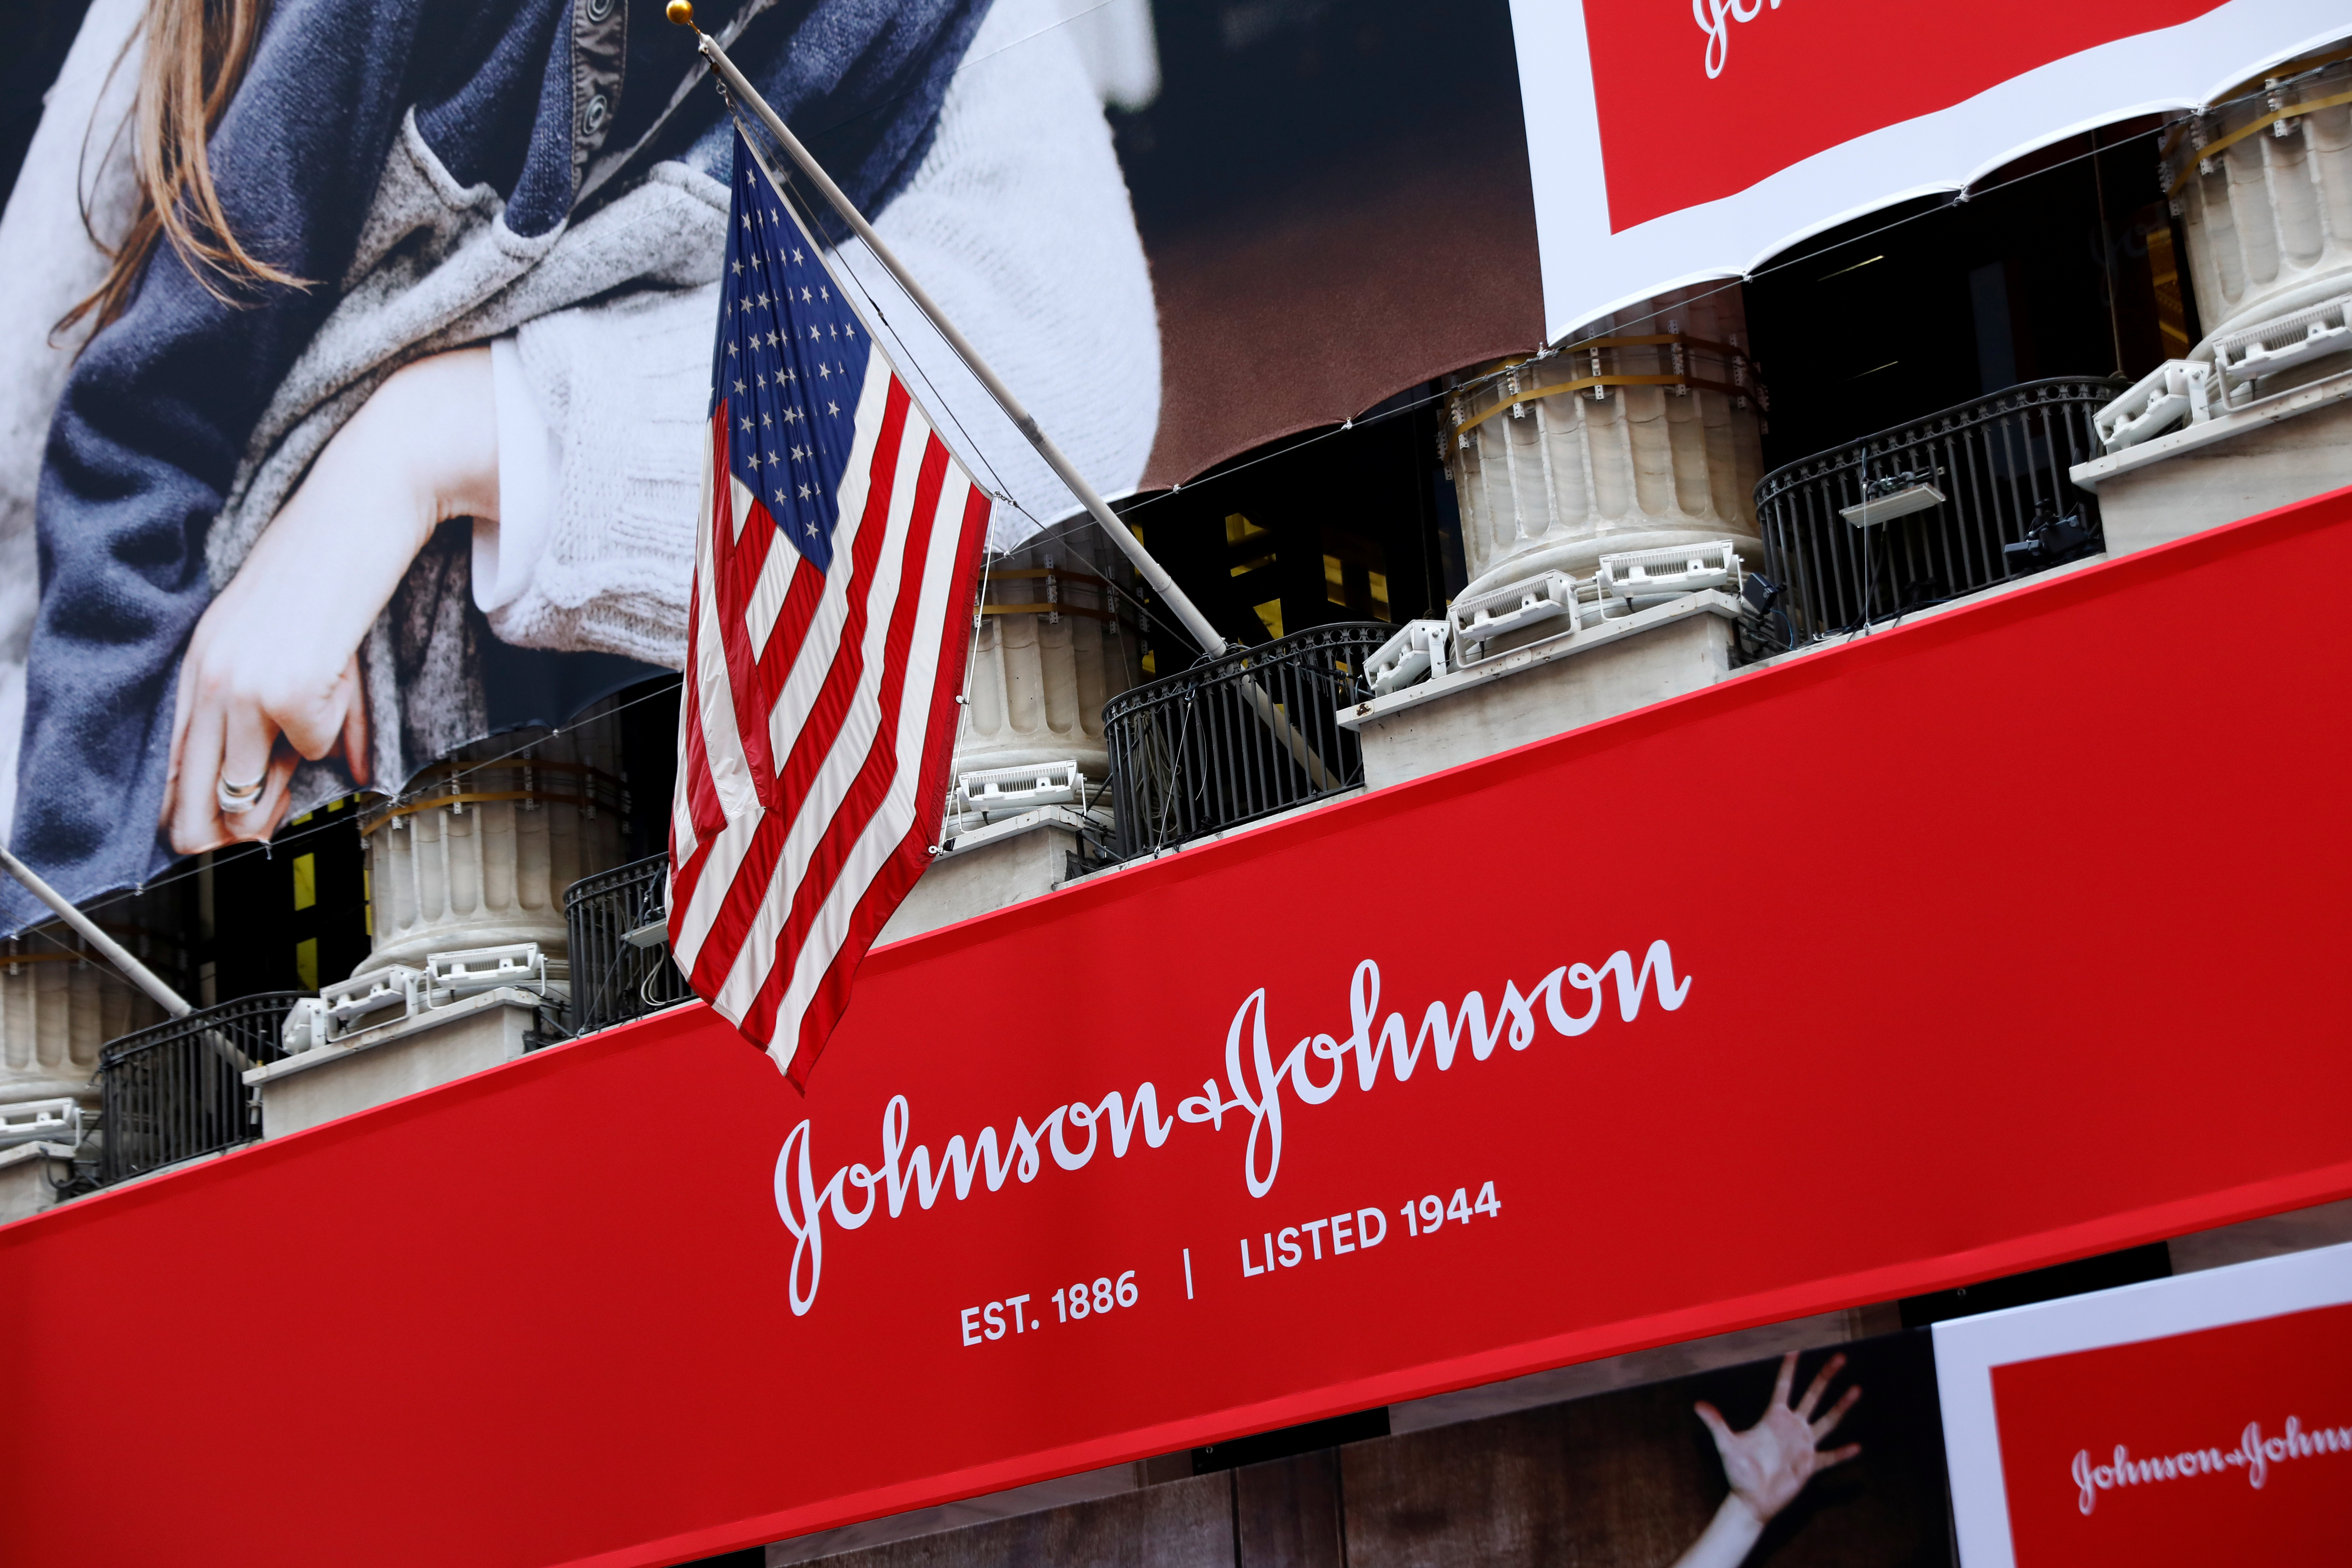 The U.S. flag is seen over the company logo for Johnson & Johnson to celebrate the 75th anniversary of the company's listing at the New York Stock Exchange (NYSE) in New York, U.S., September 17, 2019. REUTERS/Brendan McDermid